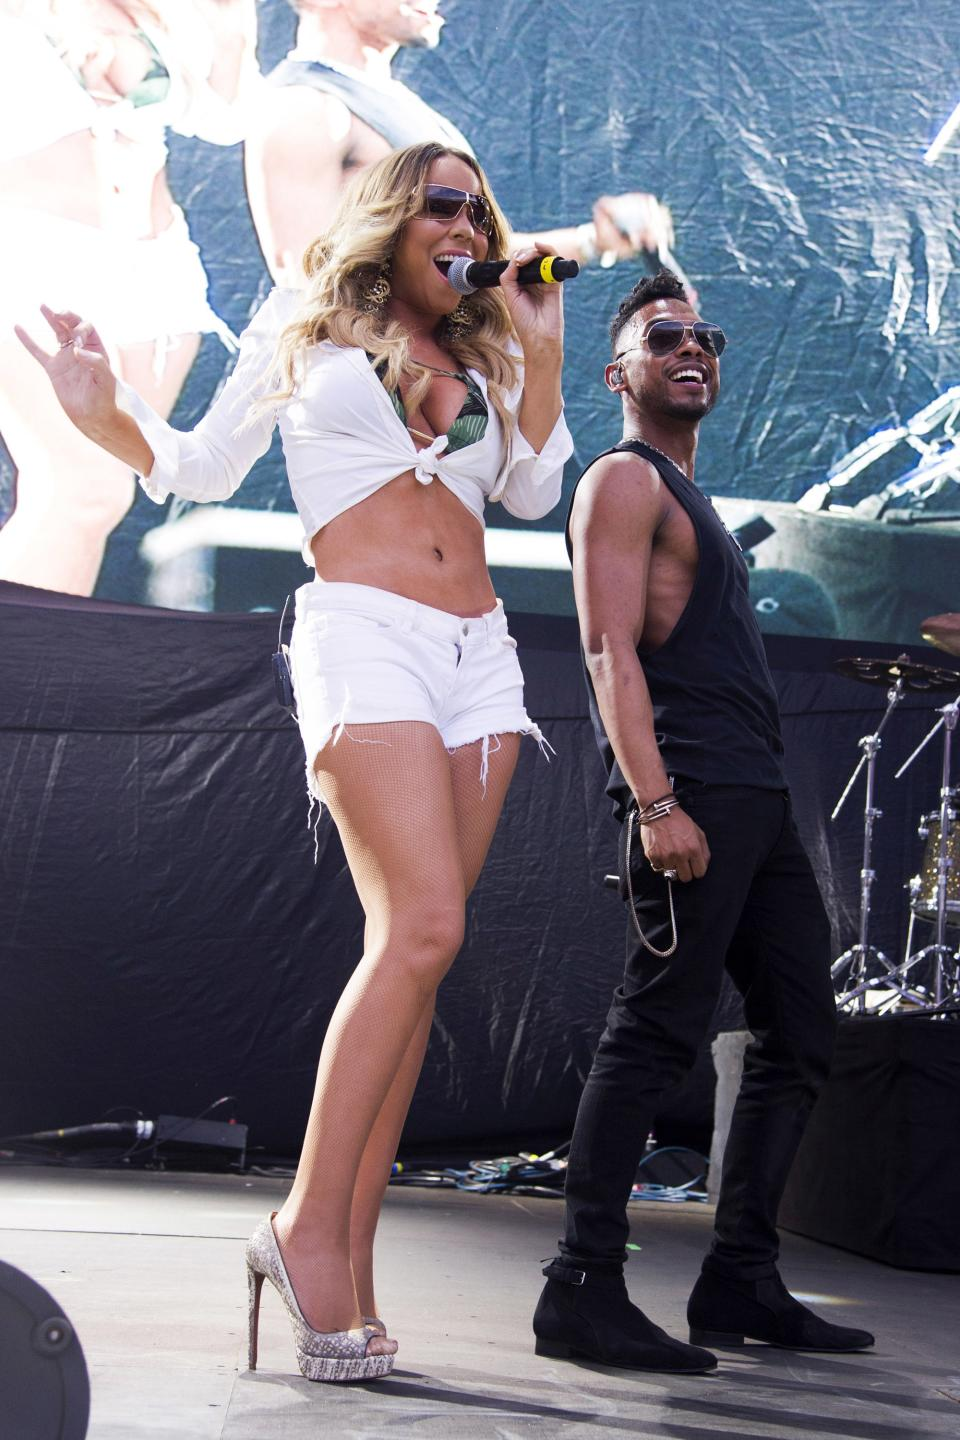 Mariah Carey and Miguel perform at the Hot 97 Summer Jam XX on Sunday, June 2, 2013 in East Rutherford, N.J. (Photo by Charles Sykes/Invision/AP)